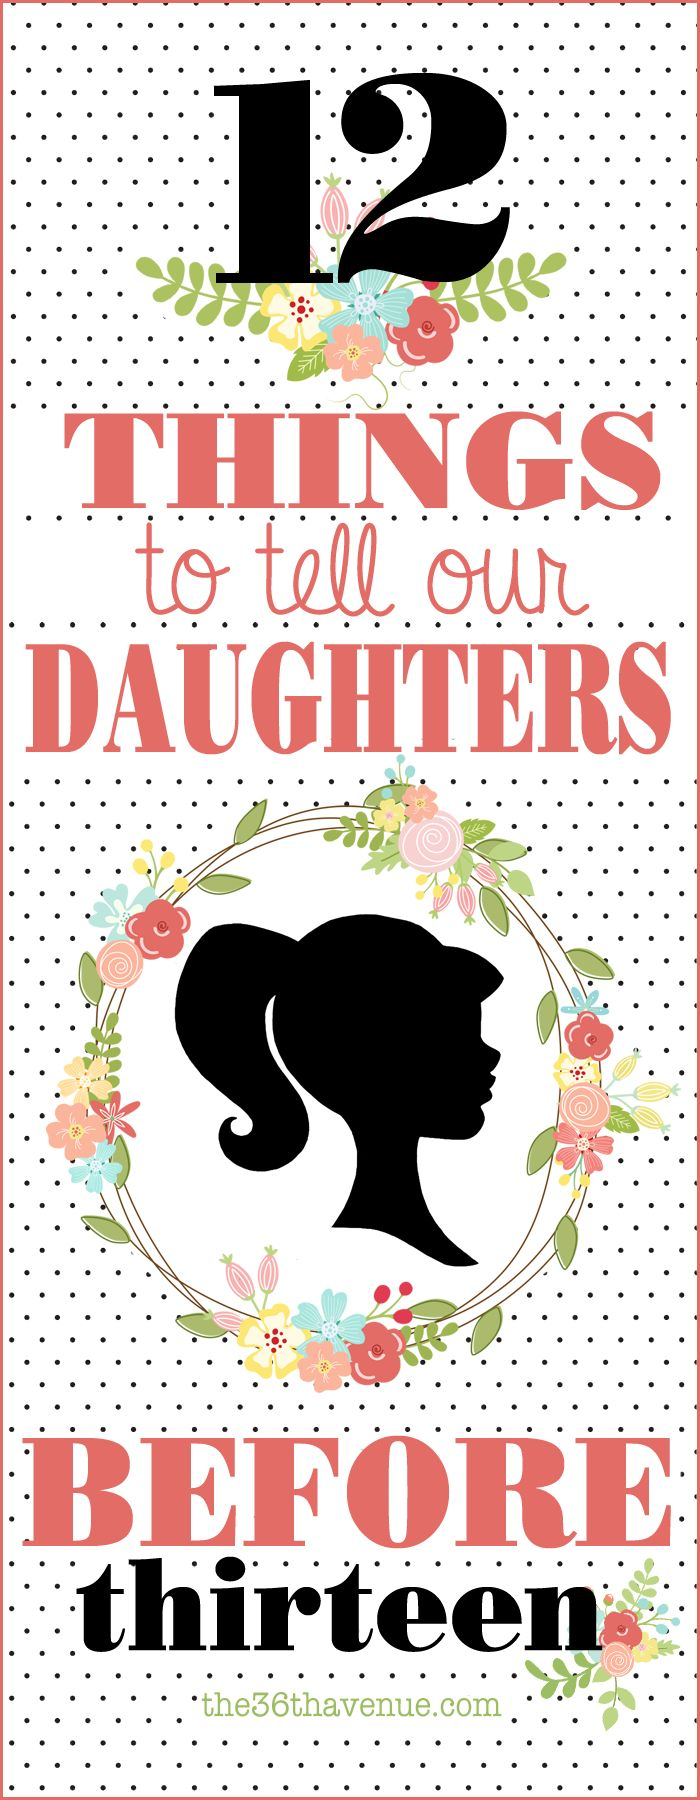 Important things for our daughters to know!